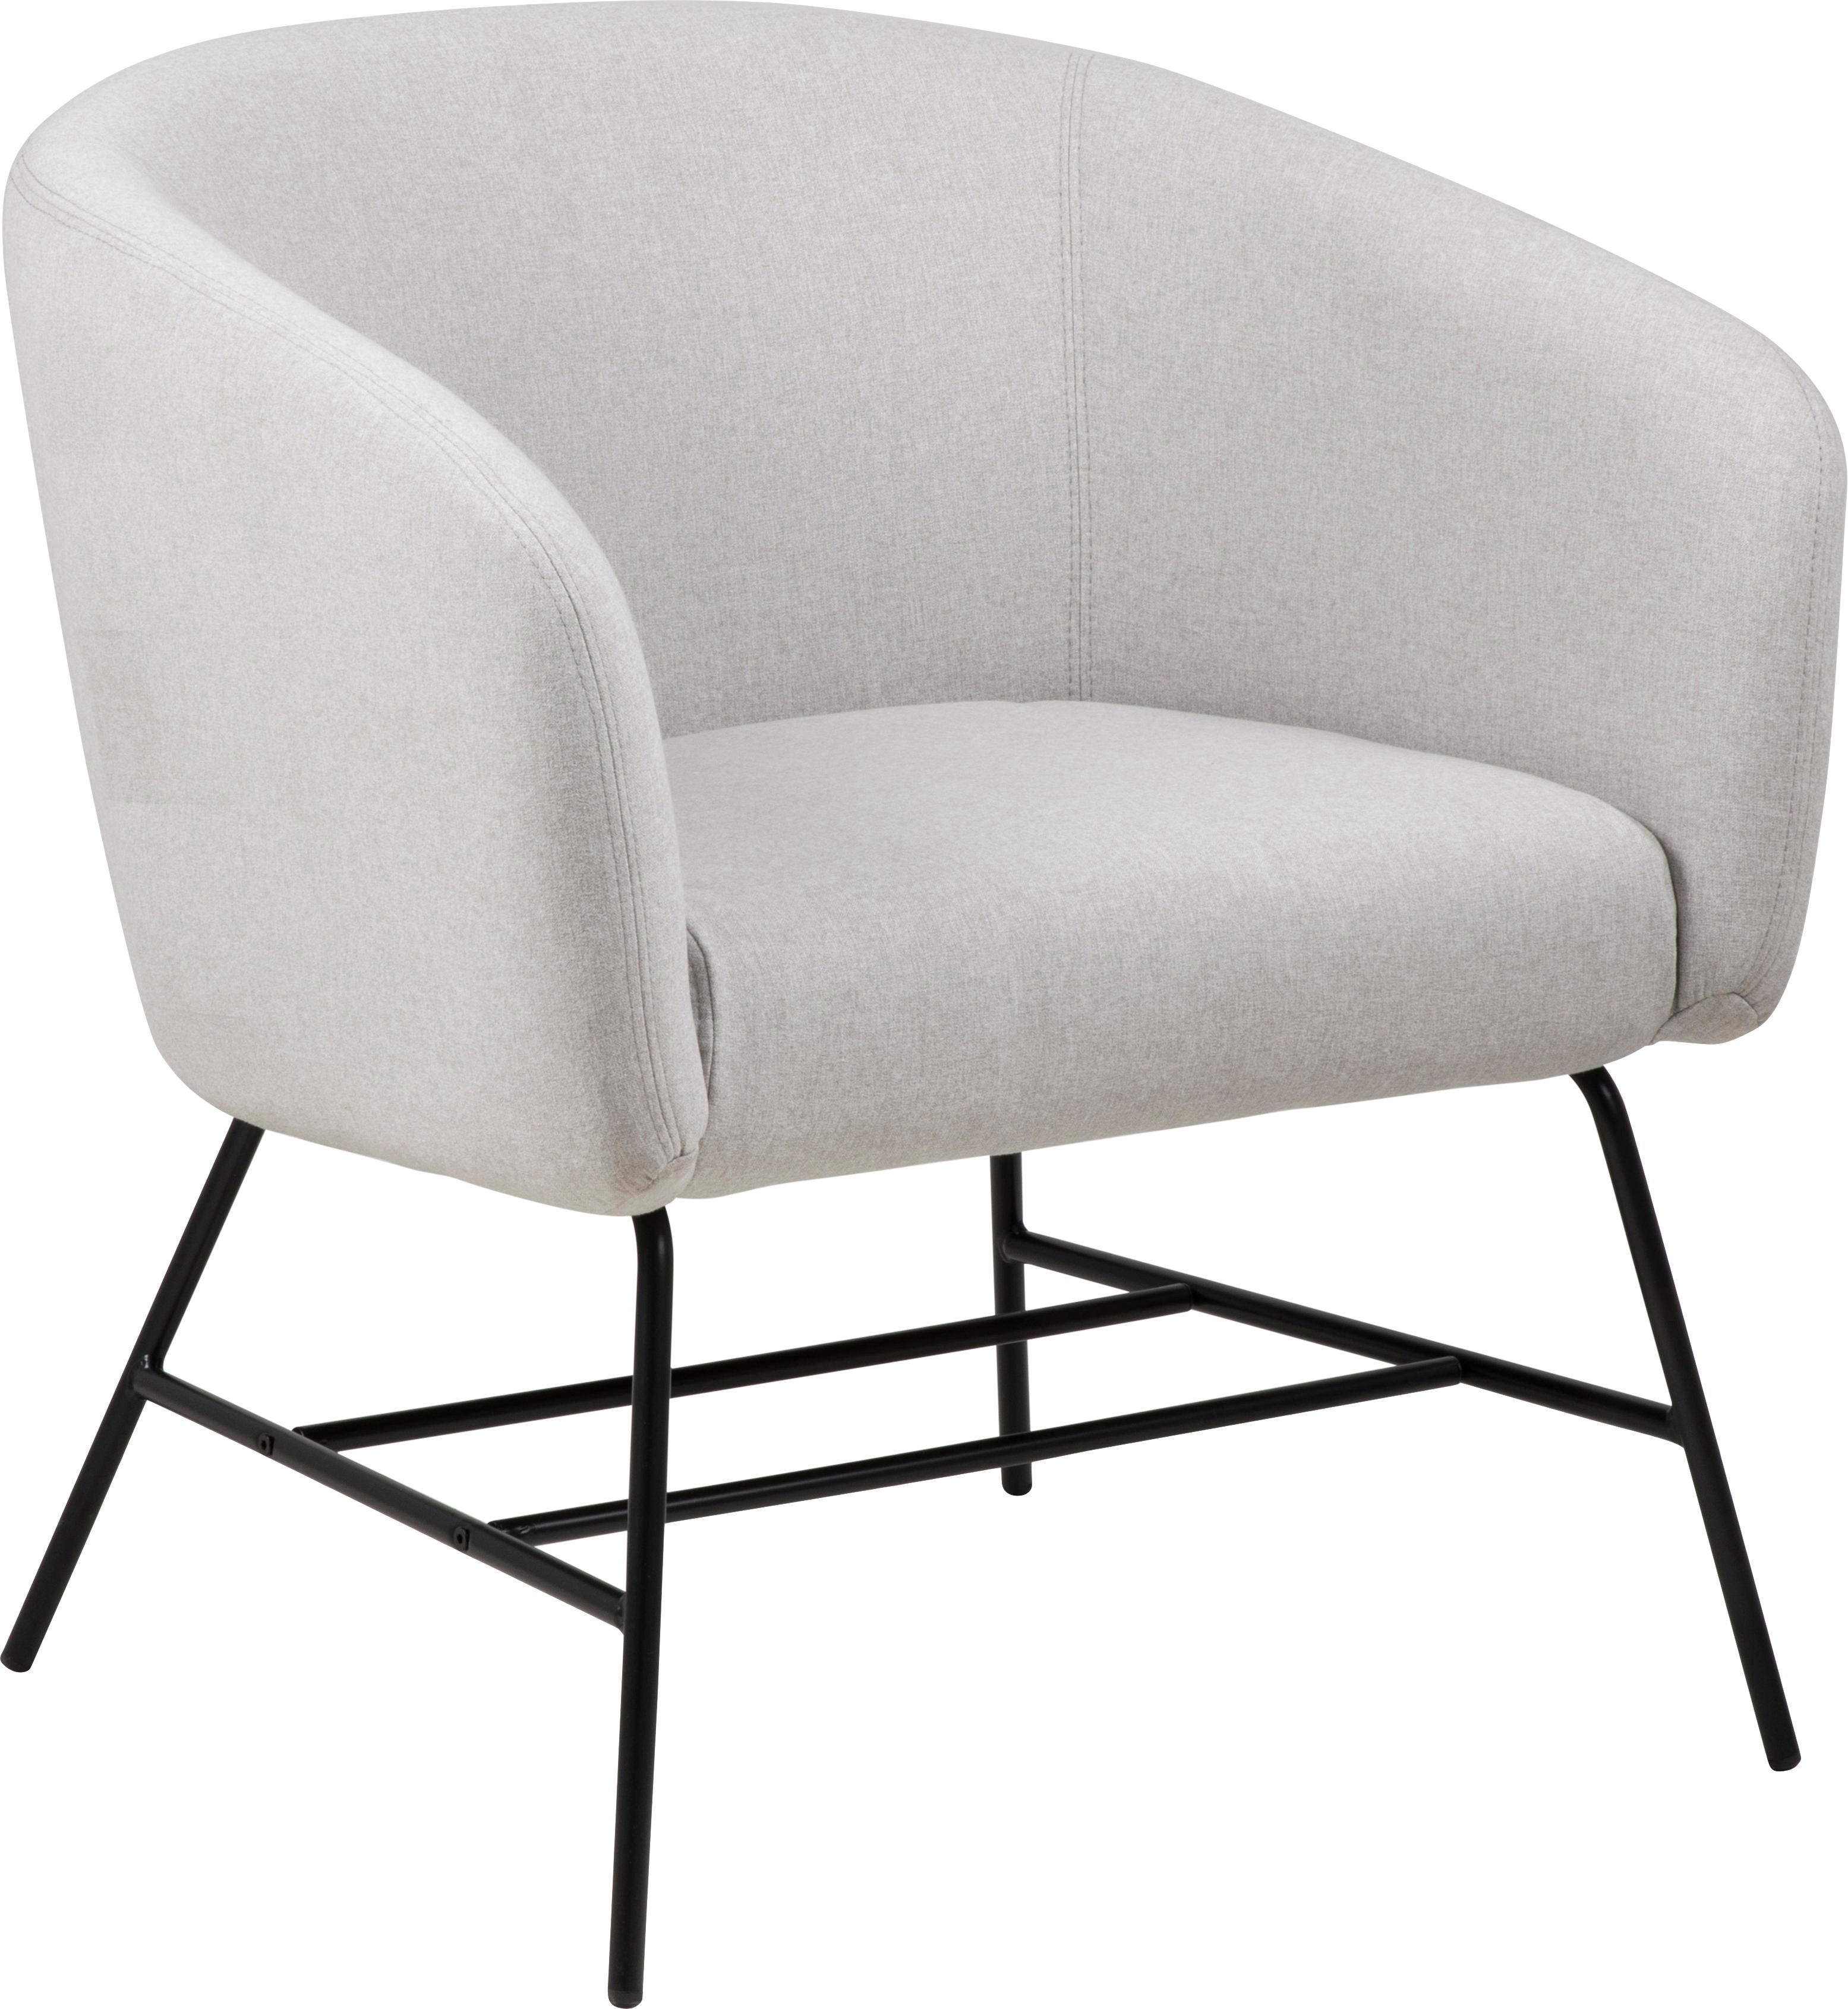 Fauteuil cocktail moderne gris clair Ramsey